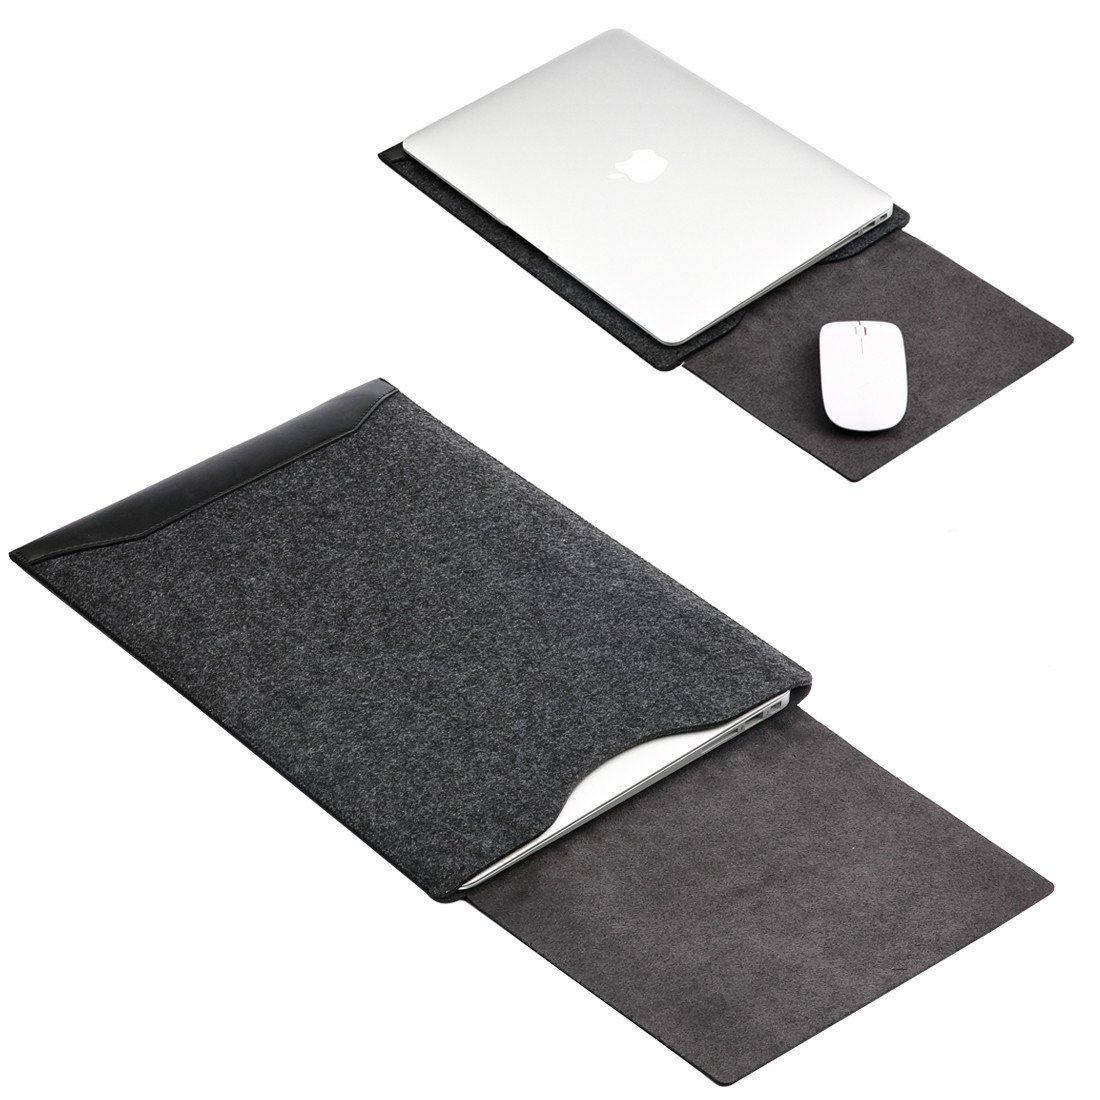 Soyan Leather and Felt Hybrid Laptop Sleeve for MacBook (12-inch, Black) Soyan Technology